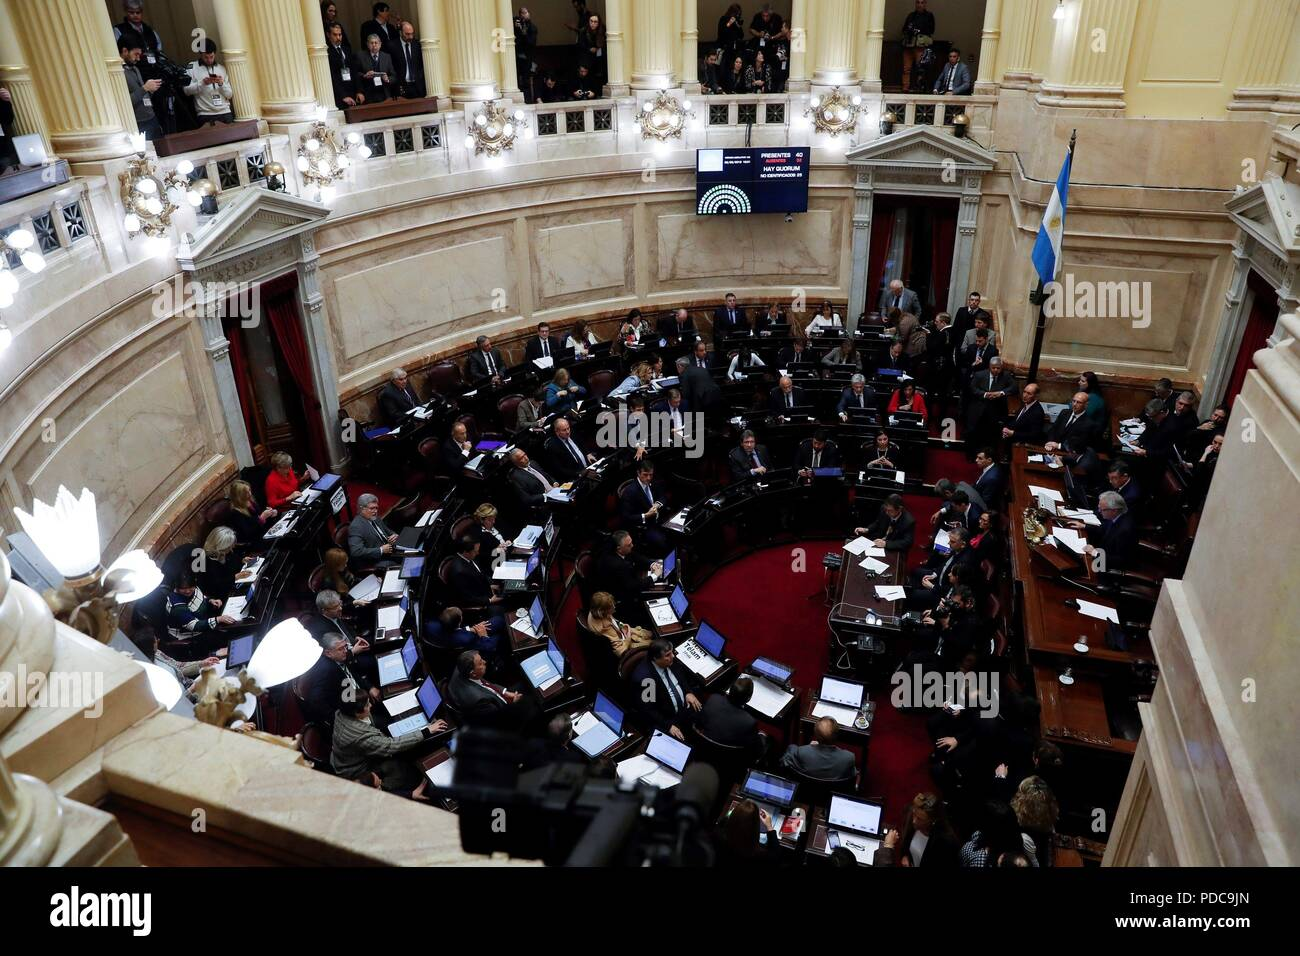 Buenos Aires, Argentina. 08th Aug, 2018. General view of a session of the Senate in Buenos Aires, Argentina, 08 August 2018. Argentina's Senate will debate a bill that would legalize abortion for pregnancies up to fourteen weeks. If passed the bill, already approved by the deputies, would make Argentina, a predominantly Catholic nation, the most populous nation in Latin America to legalize abortion. Credit: David Fernandez/EFE/Alamy Live News - Stock Image